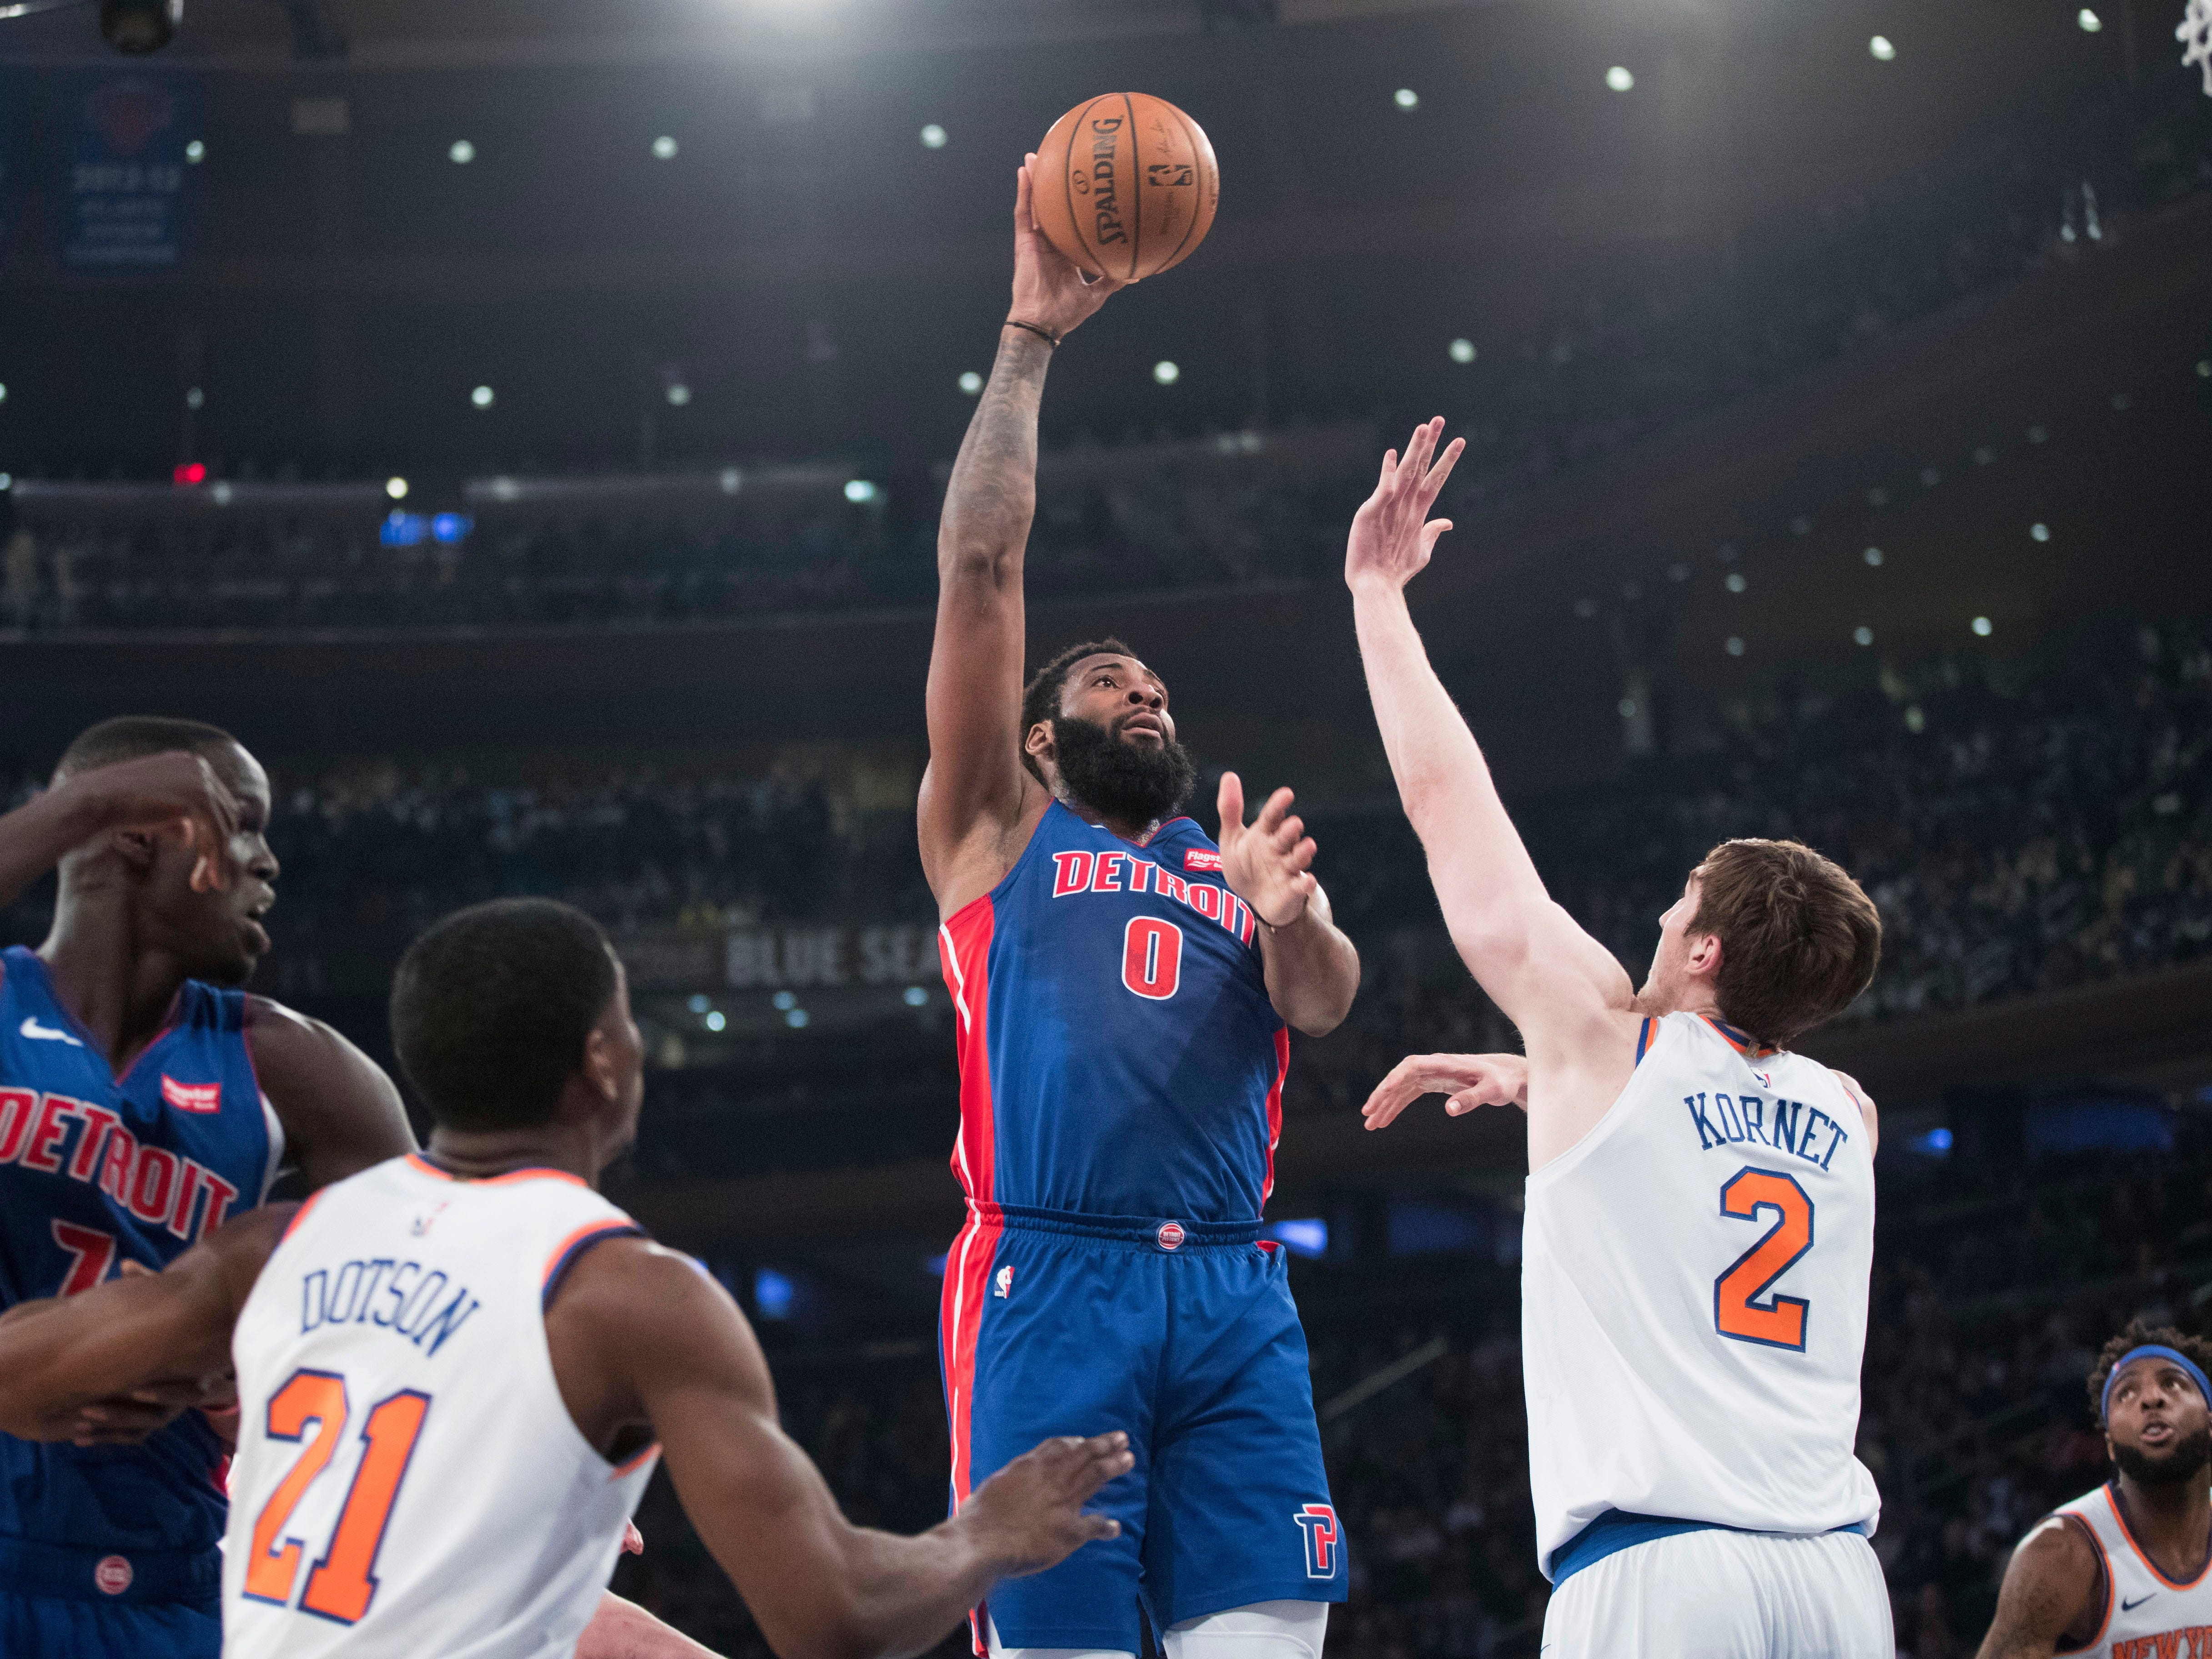 Detroit Pistons center Andre Drummond (0) goes to the basket over New York Knicks forward Luke Kornet (2) during the first half of an NBA basketball game Wednesday, April 10, 2019, at Madison Square Garden in New York.